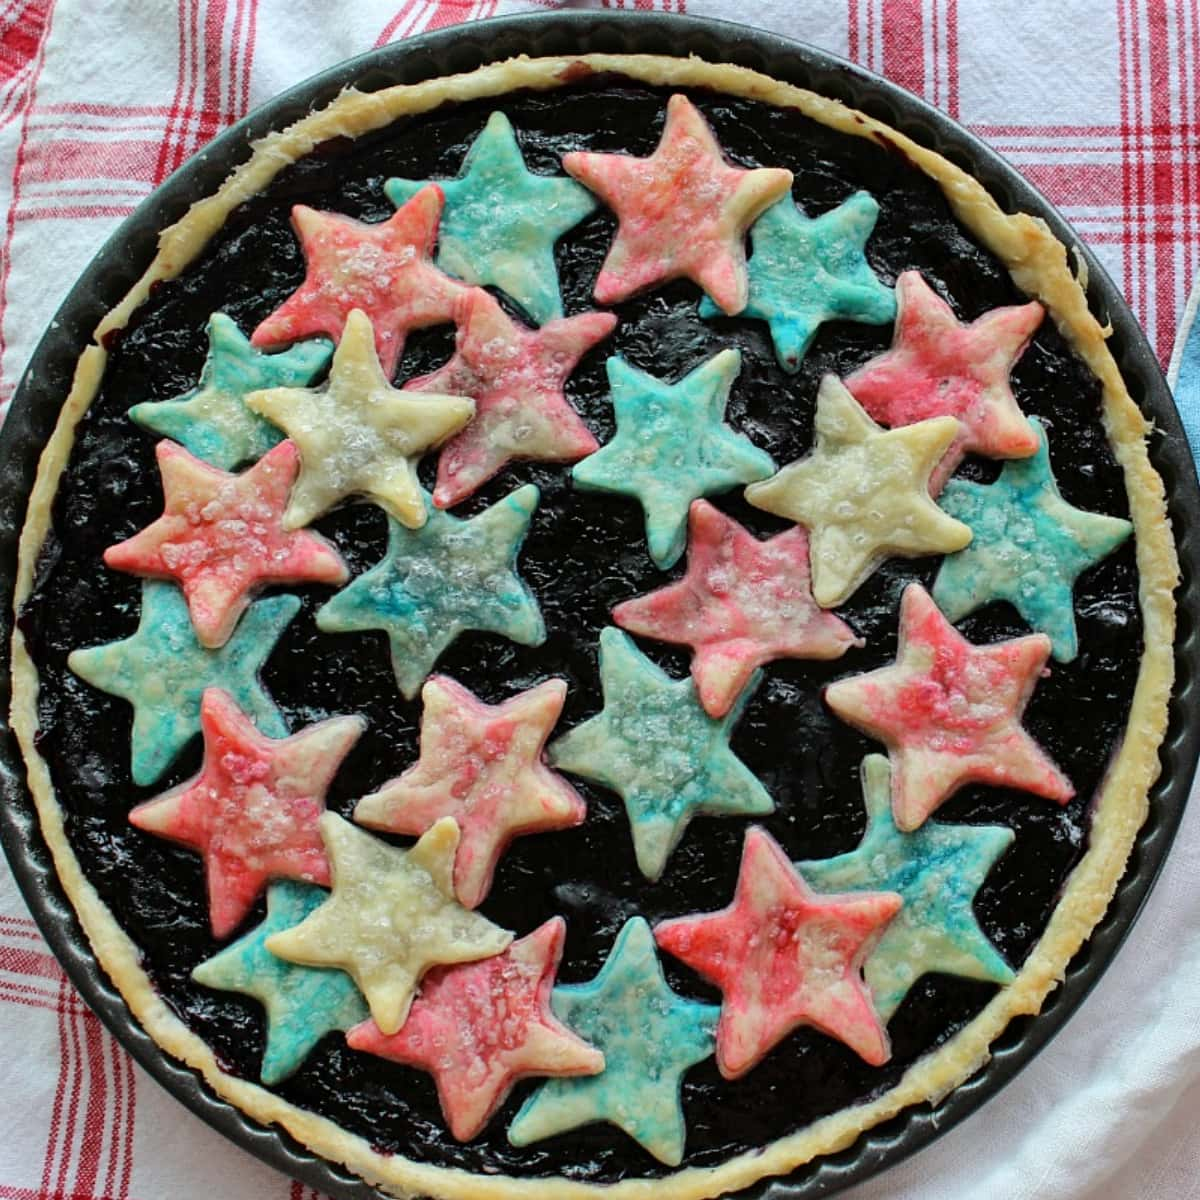 Fruit tart with red and blue stars sitting on a gingham cloth.